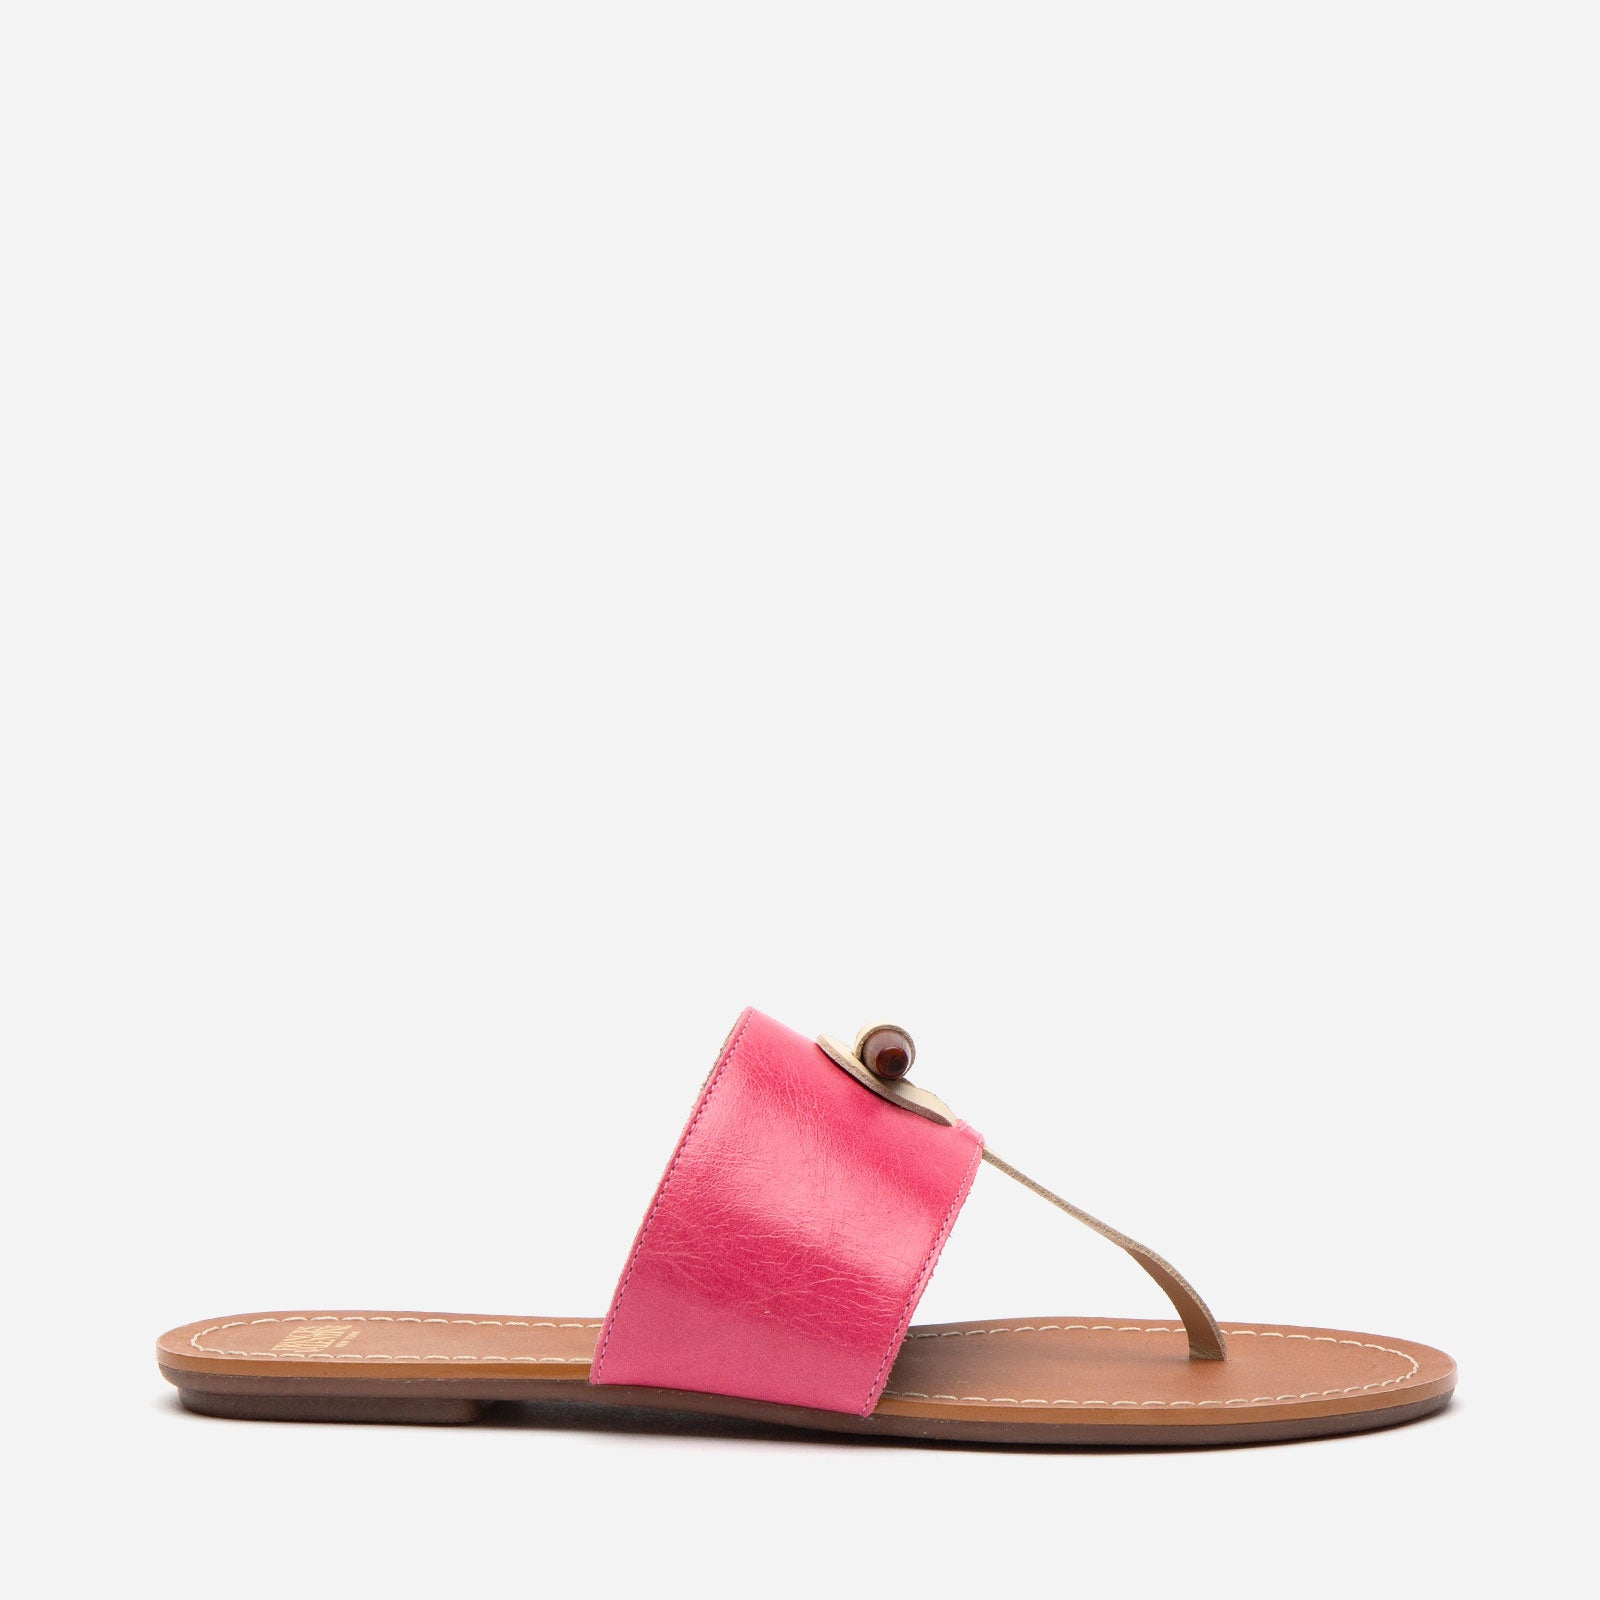 Toggle Slide Naplak Leather Pink Oyster - Frances Valentine